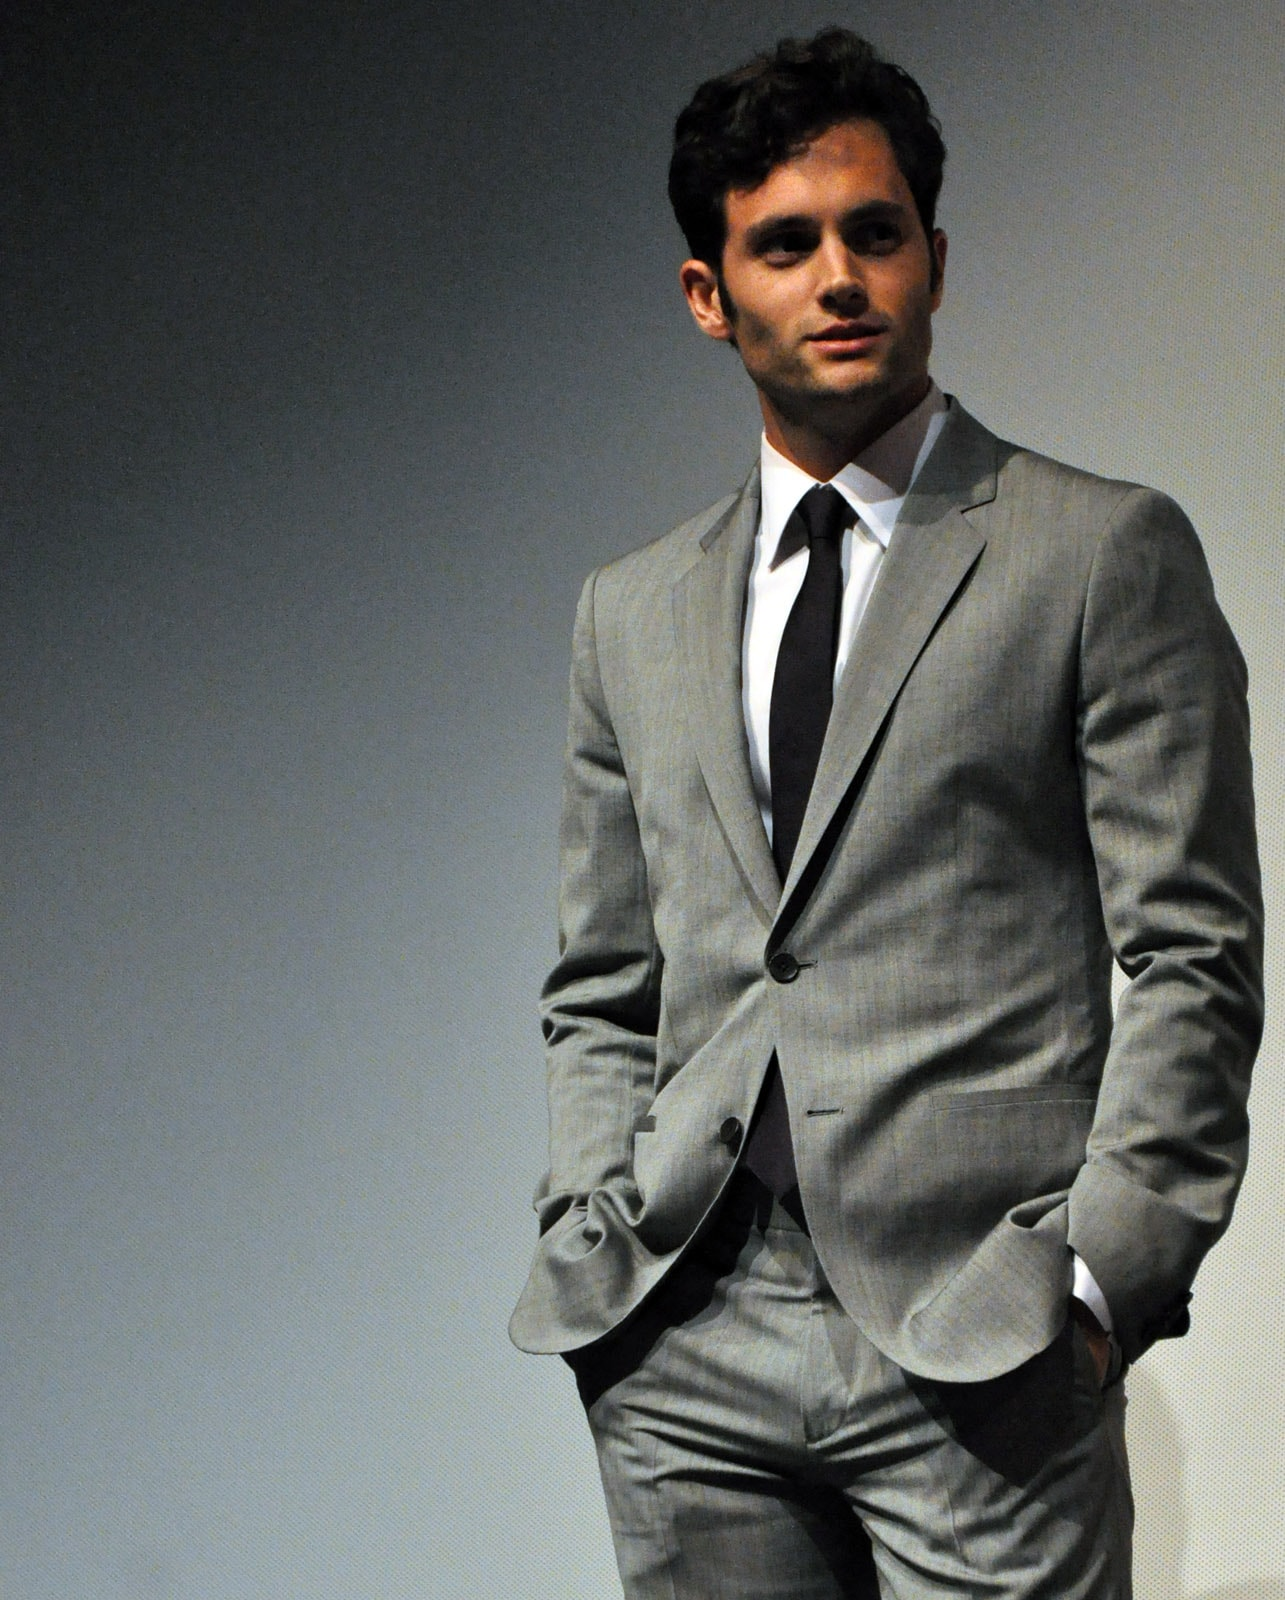 Penn Badgley Backgrounds